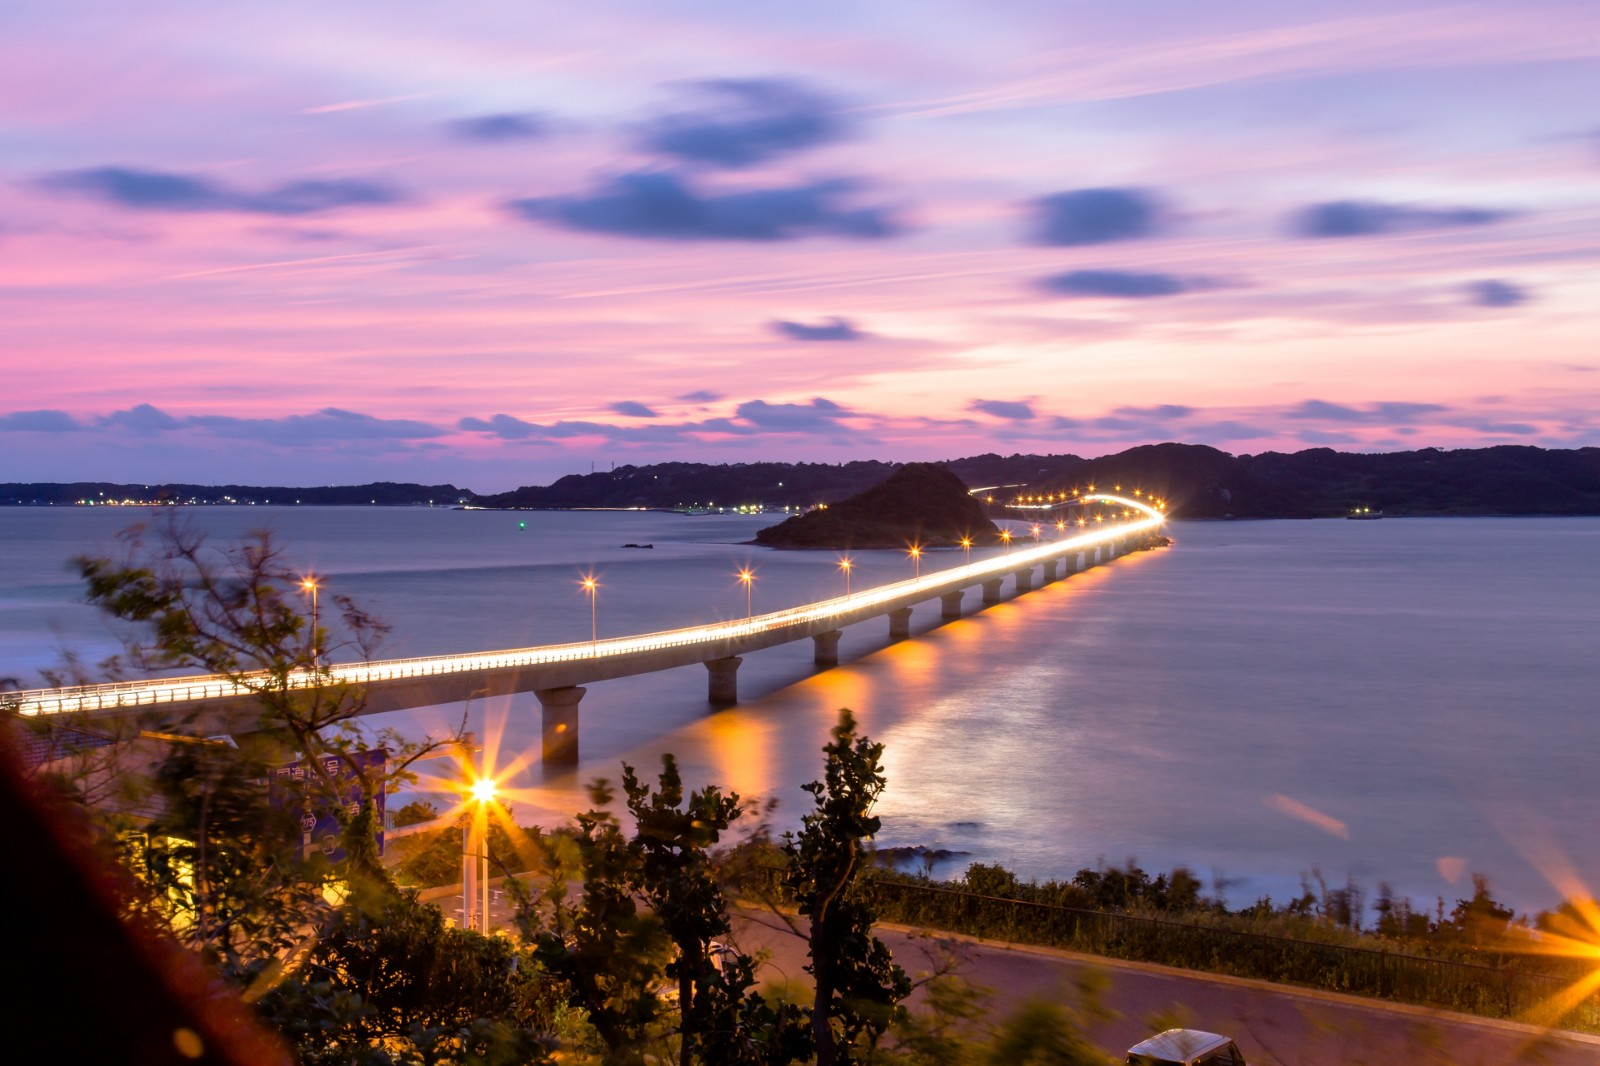 The twilight view at Tsunoshima Island and Tsunoshima Bridge